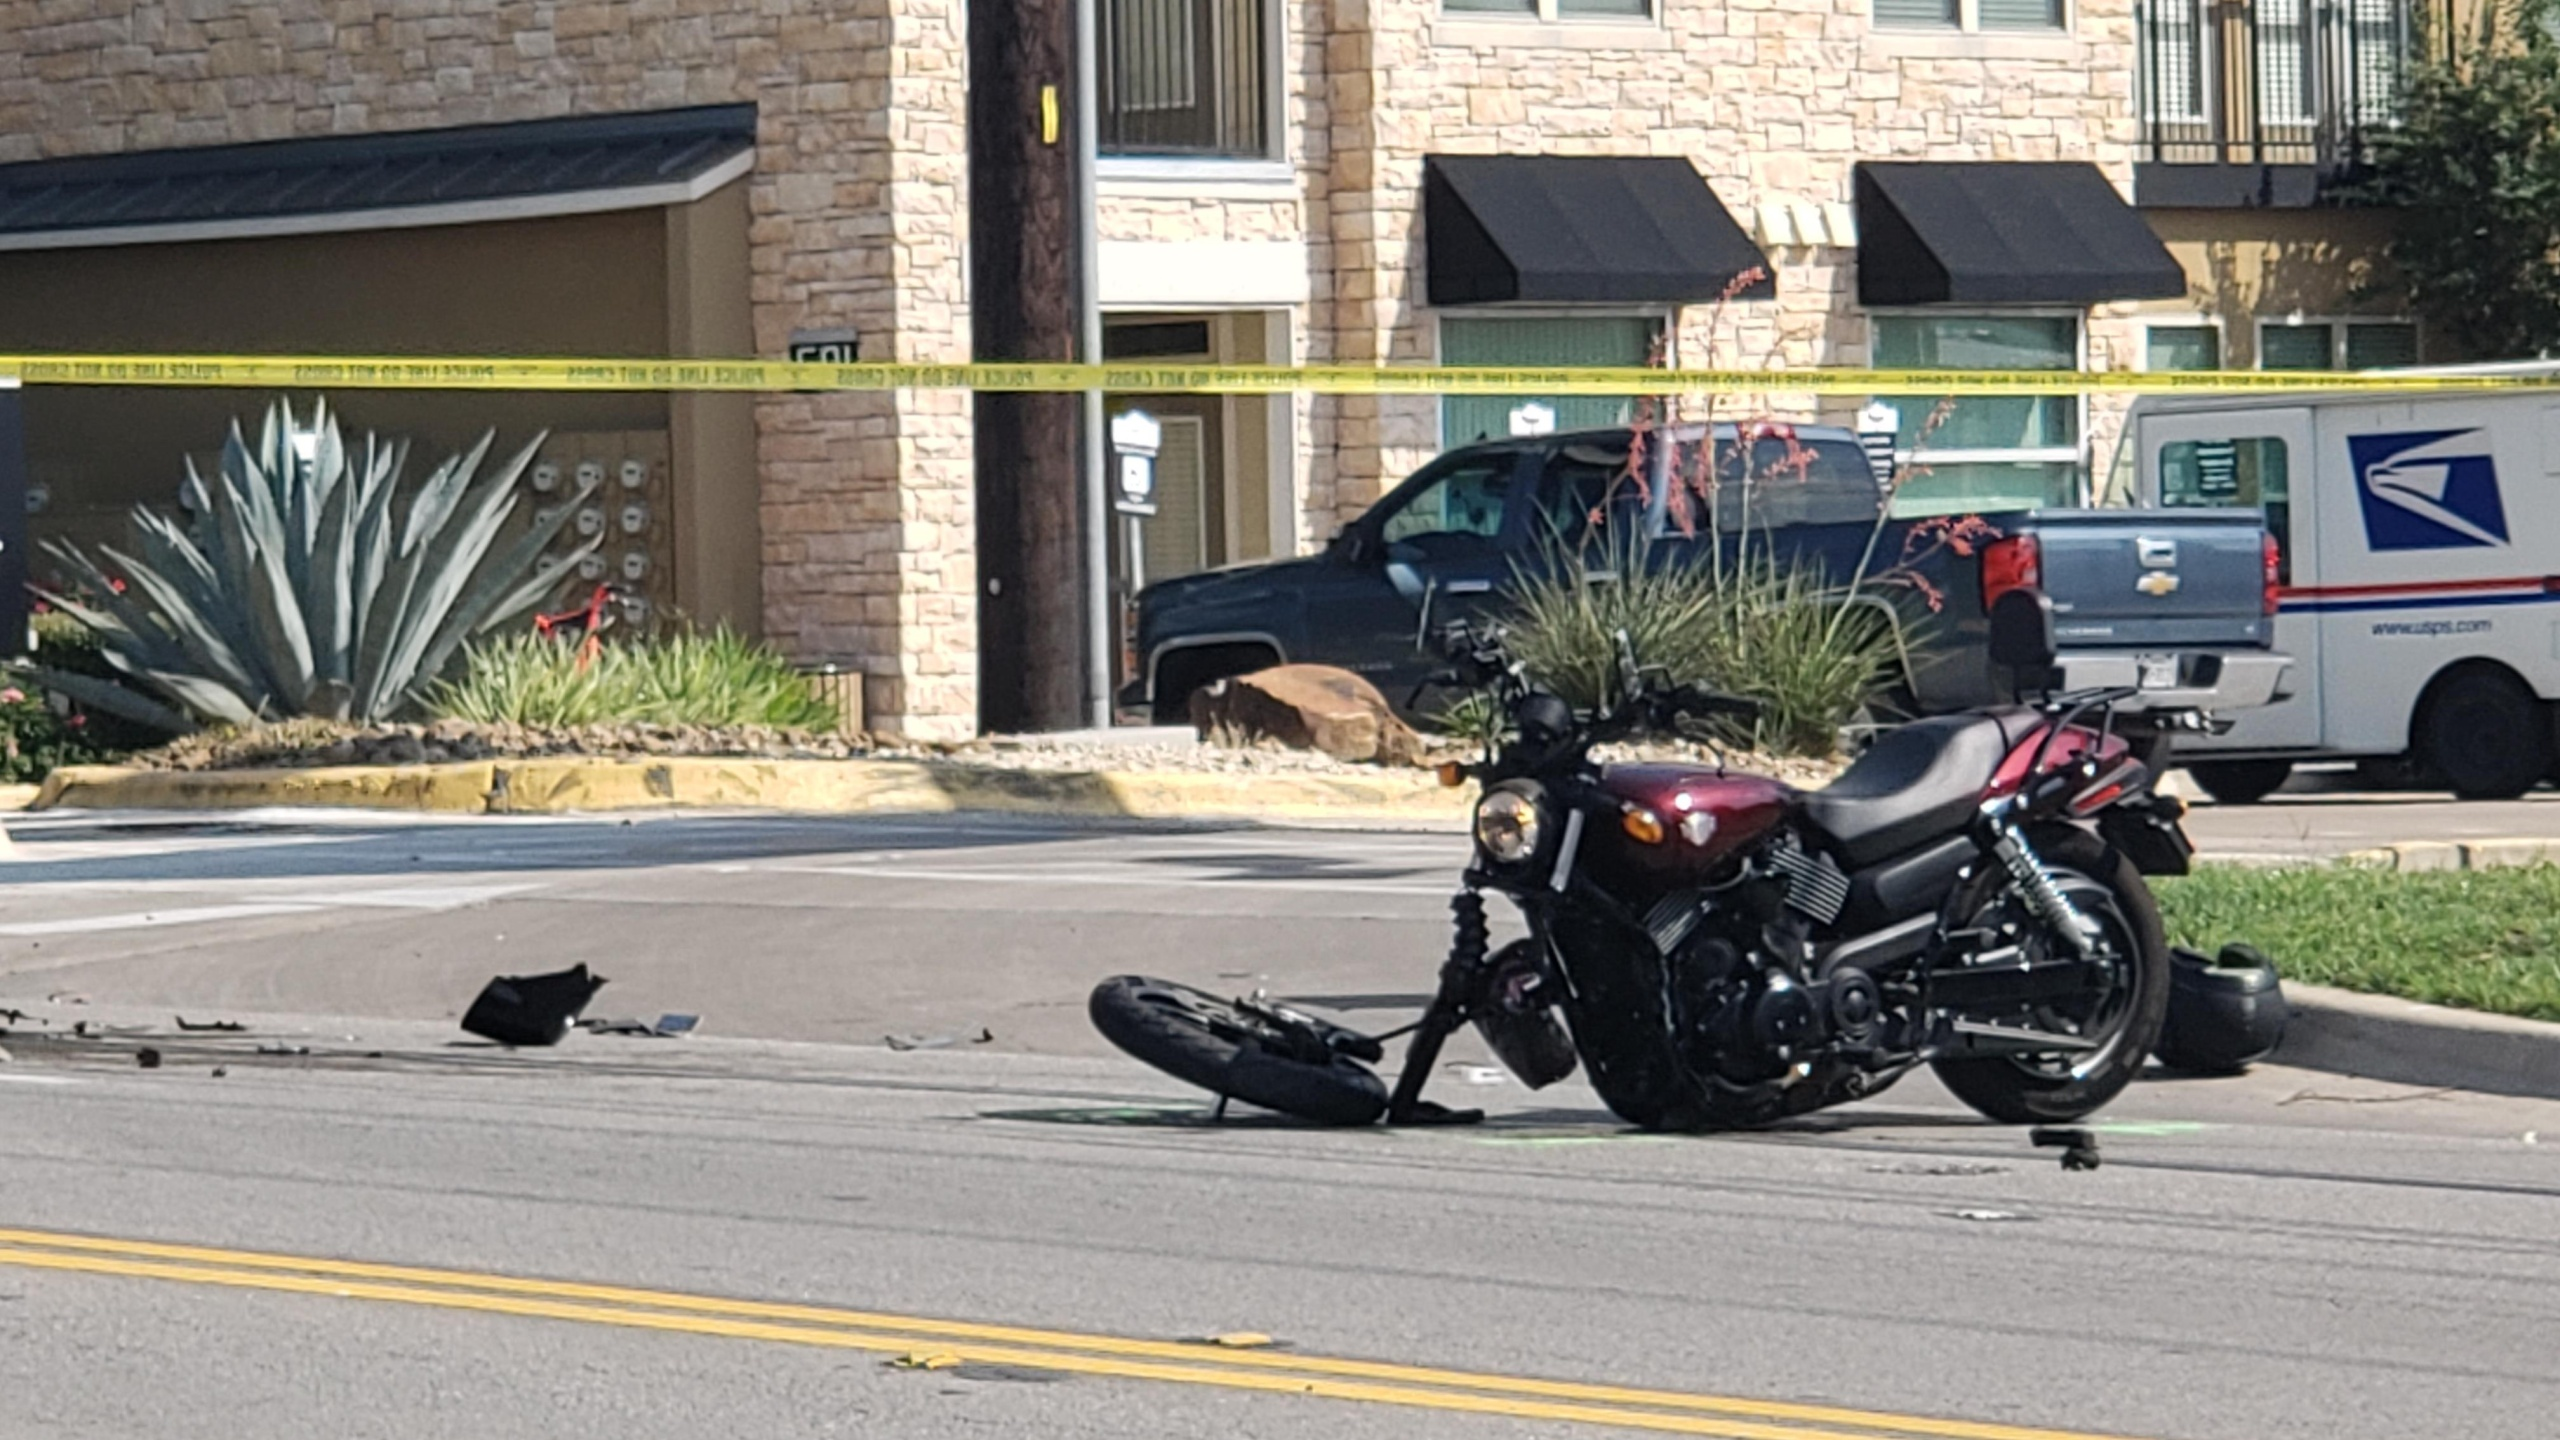 Motorcyclist killed in Monday crash on Oltorf Street